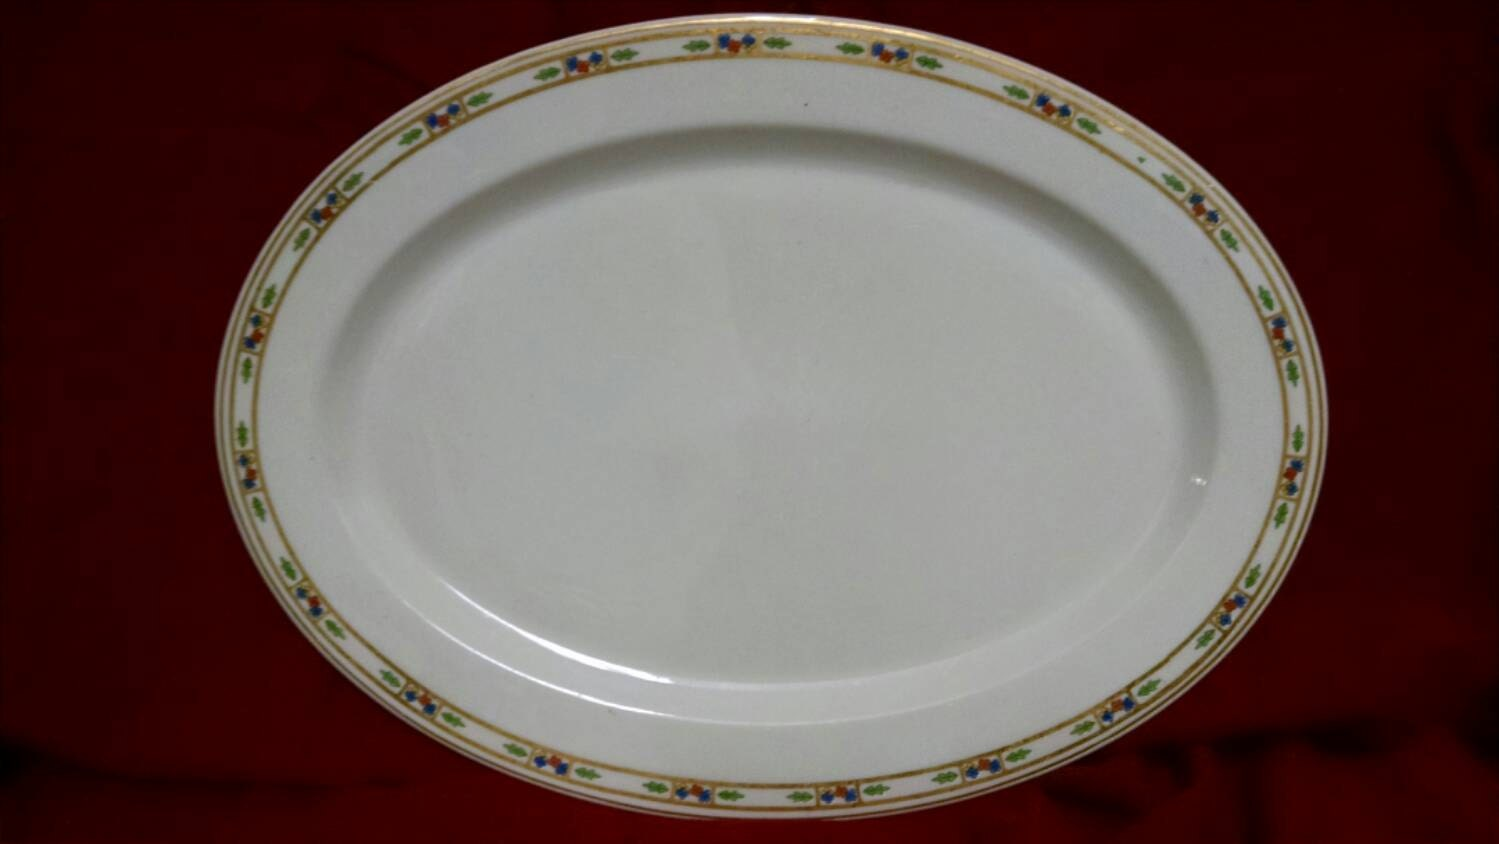 Platter made by syracuse china in the popular orleans pattern Most popular china patterns